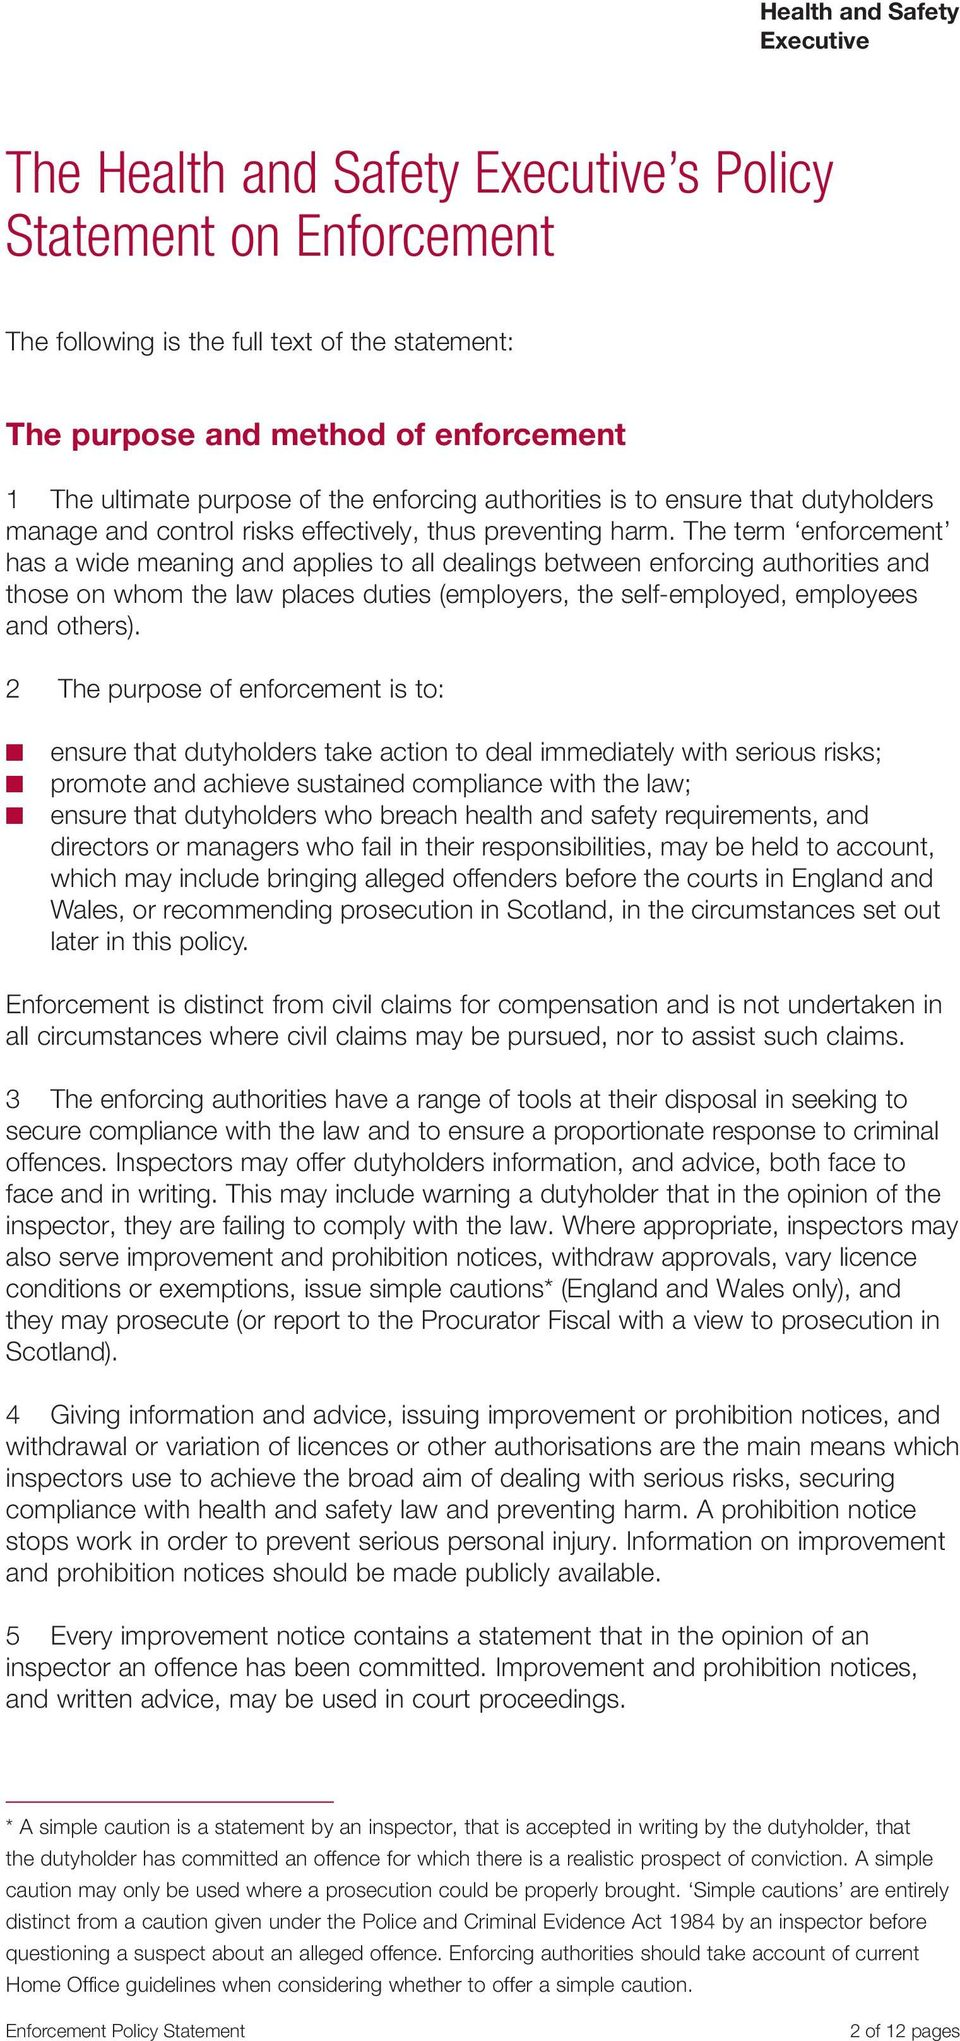 The term enforcement has a wide meaning and applies to all dealings between enforcing authorities and those on whom the law places duties (employers, the self-employed, employees and others).